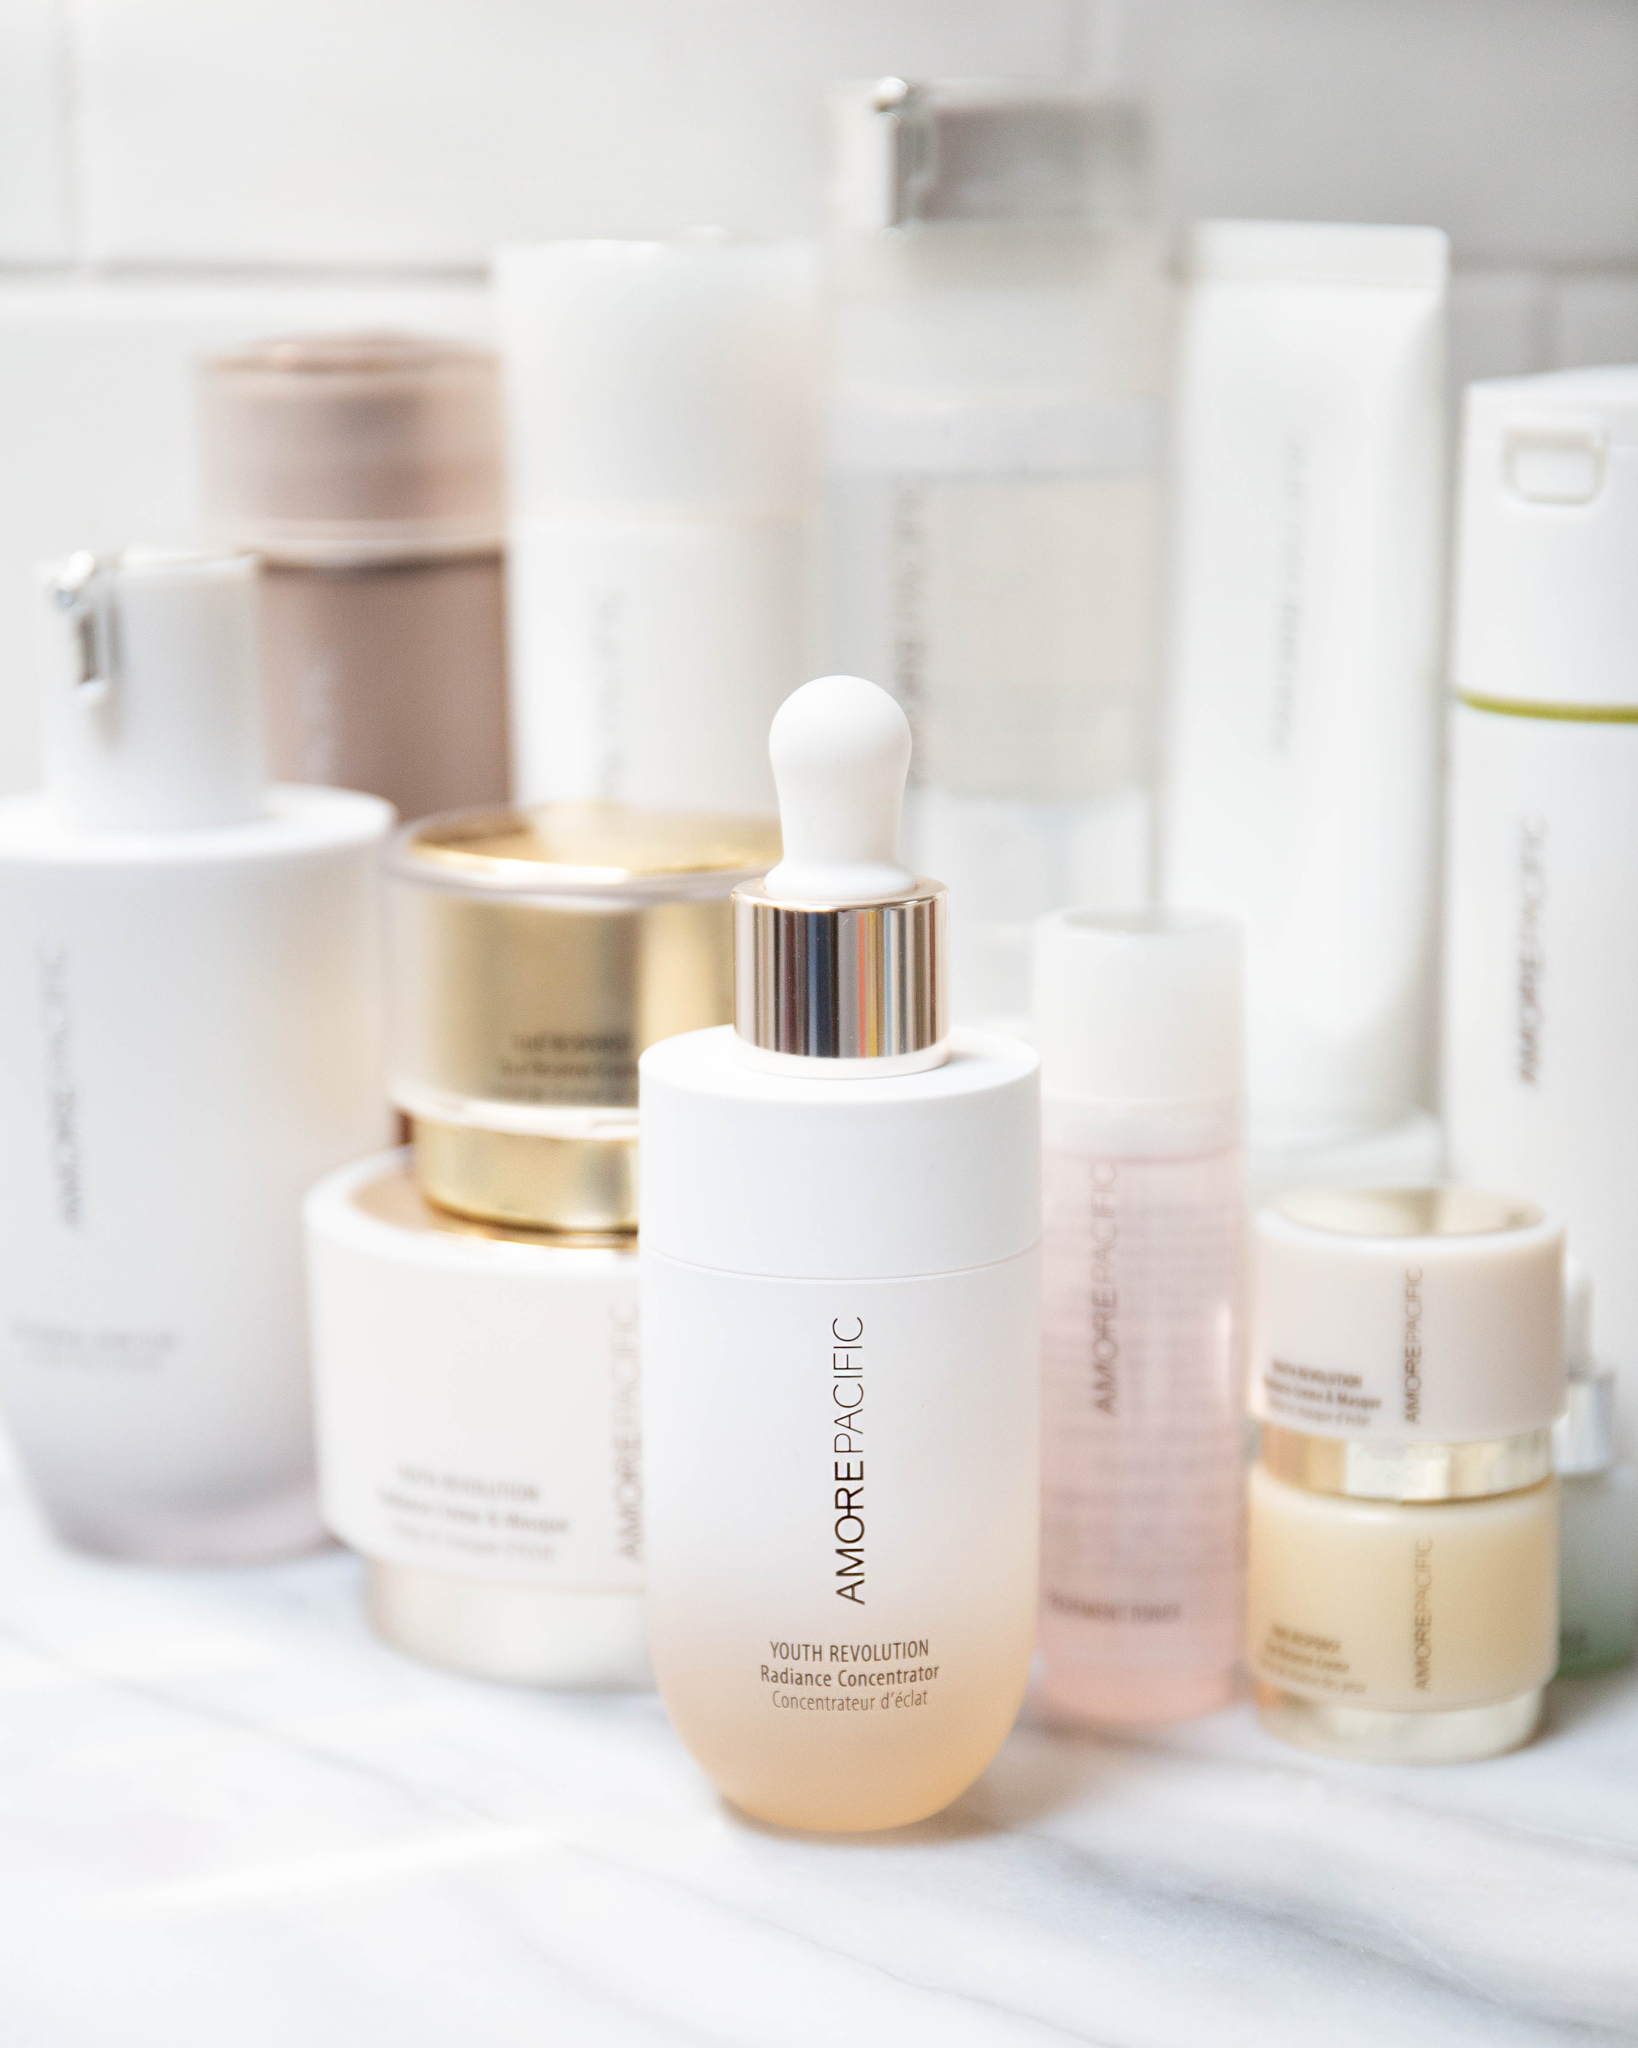 AmorePacific beauty products